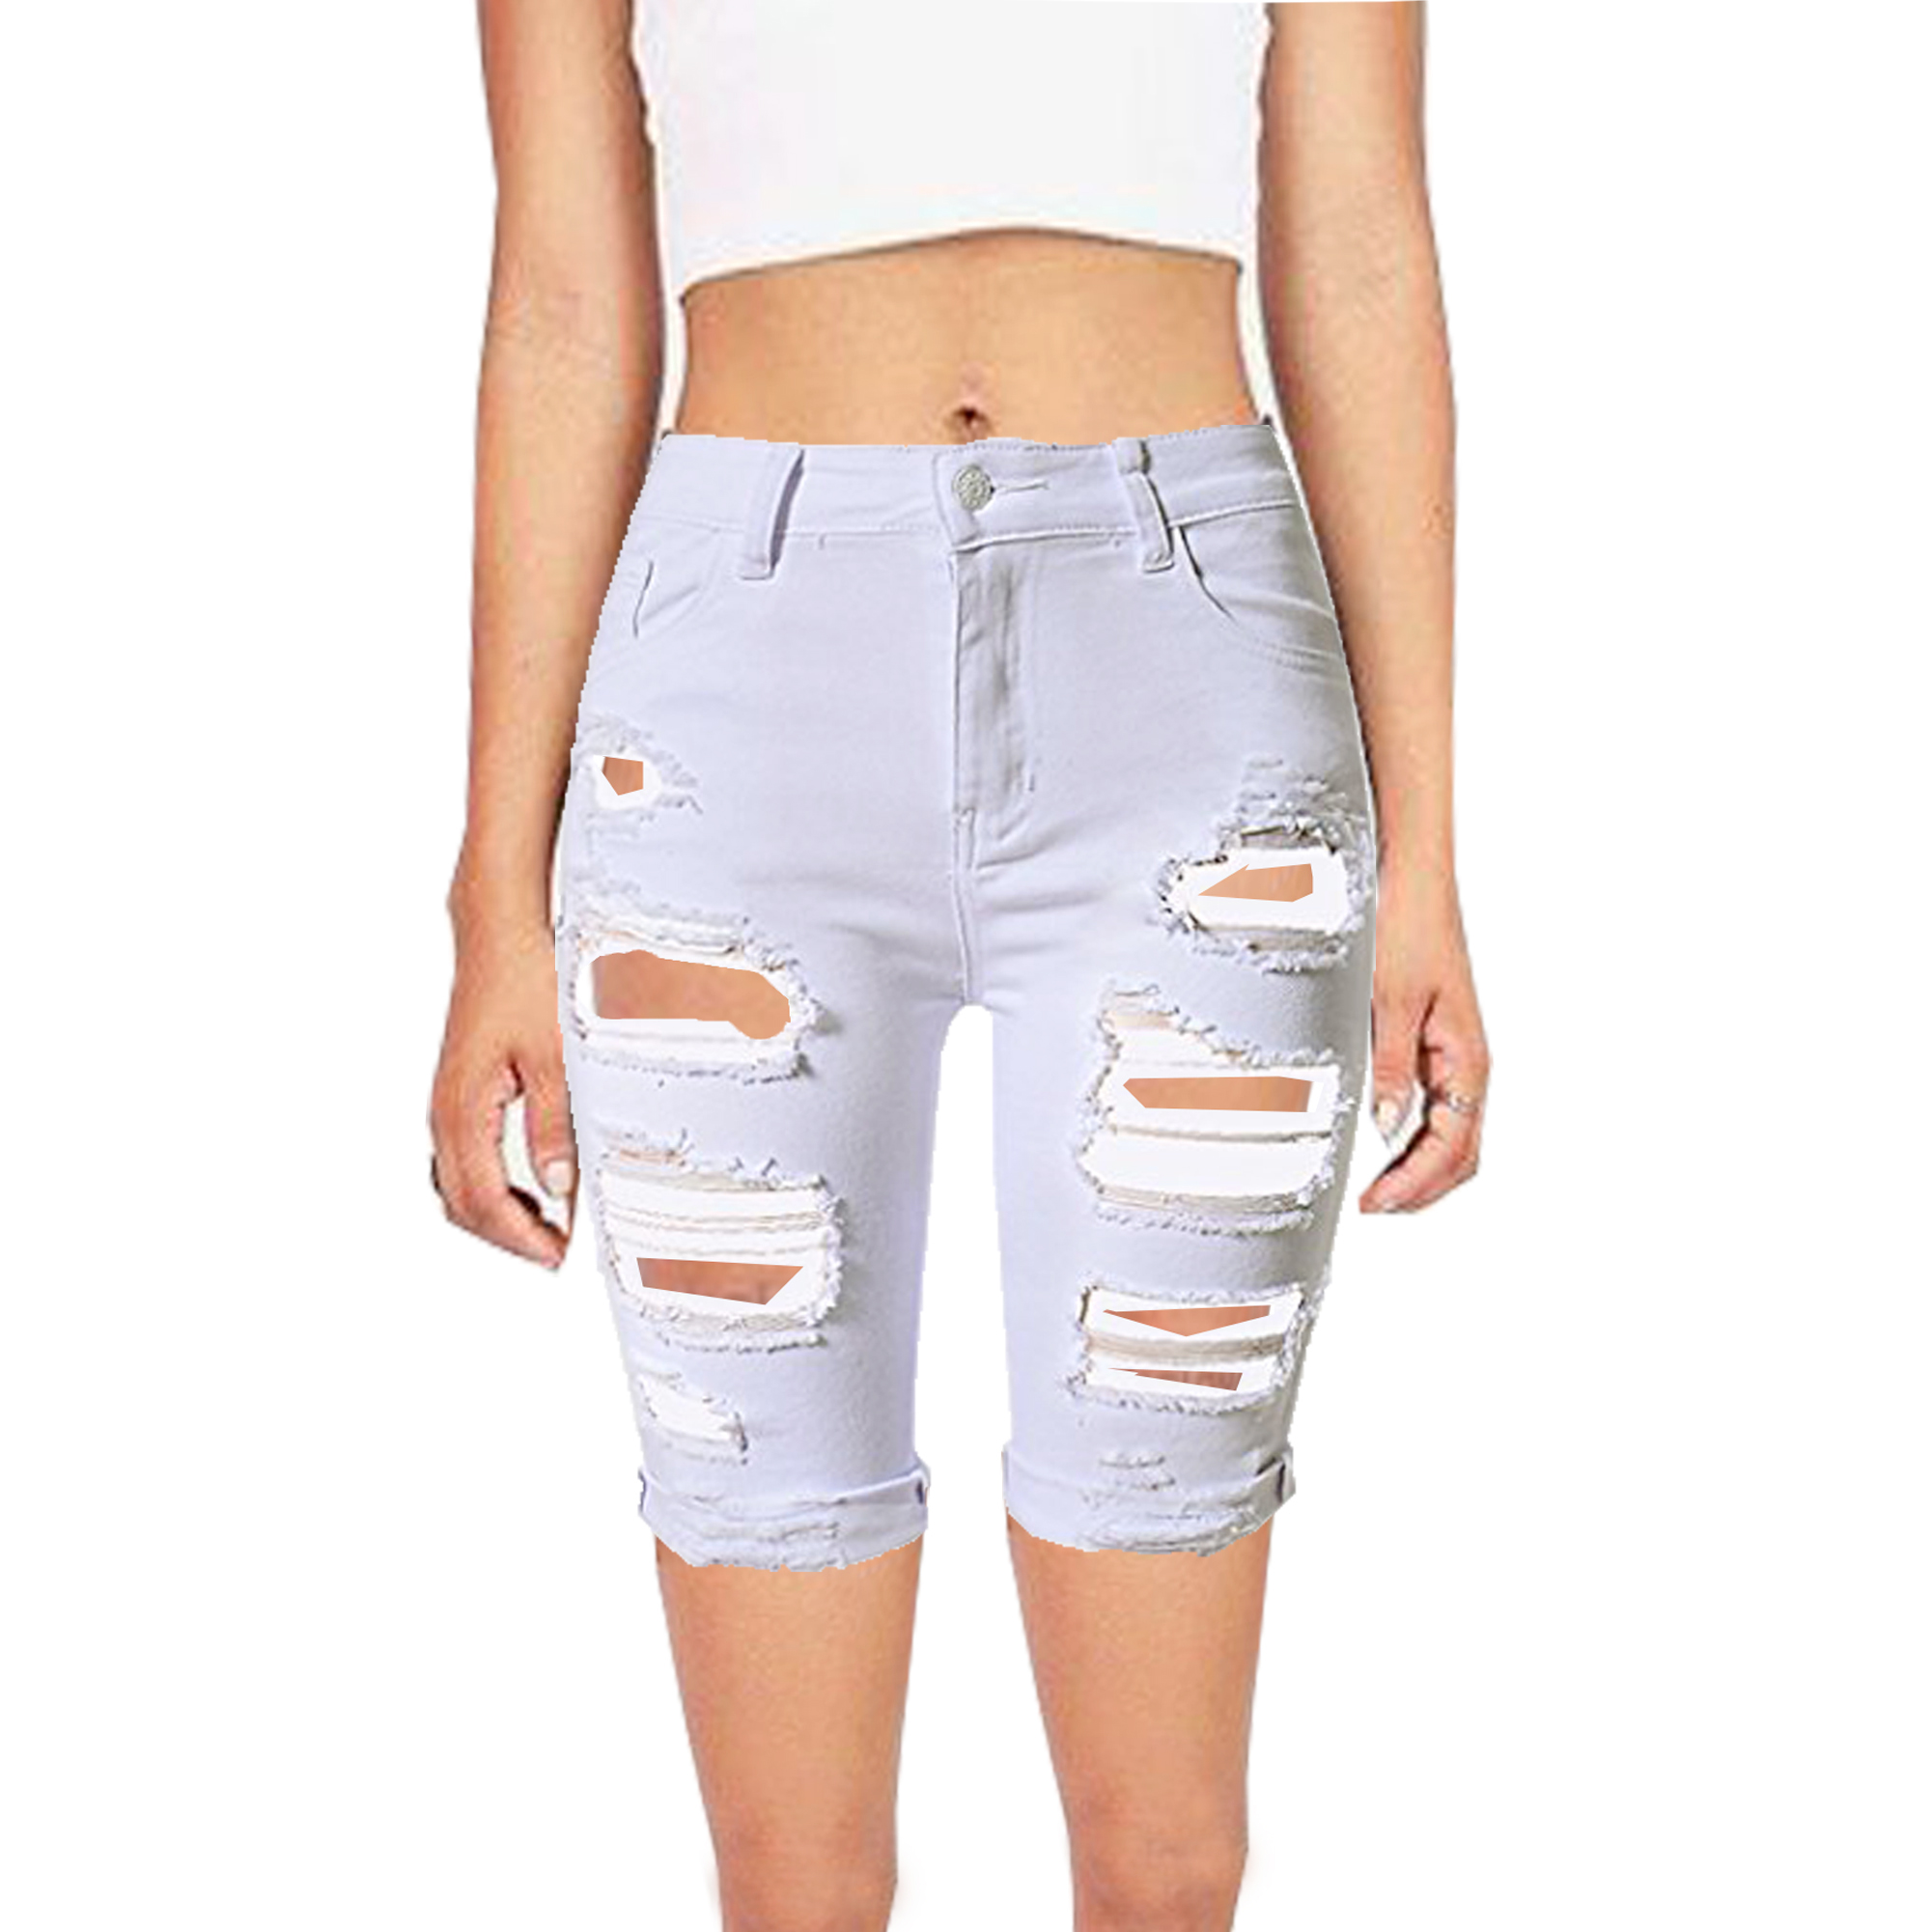 d85d4df3bc Womens White Jeans Ripped Hole Distressed Slim Short Ladies Denim Frayed  Stretch Pant